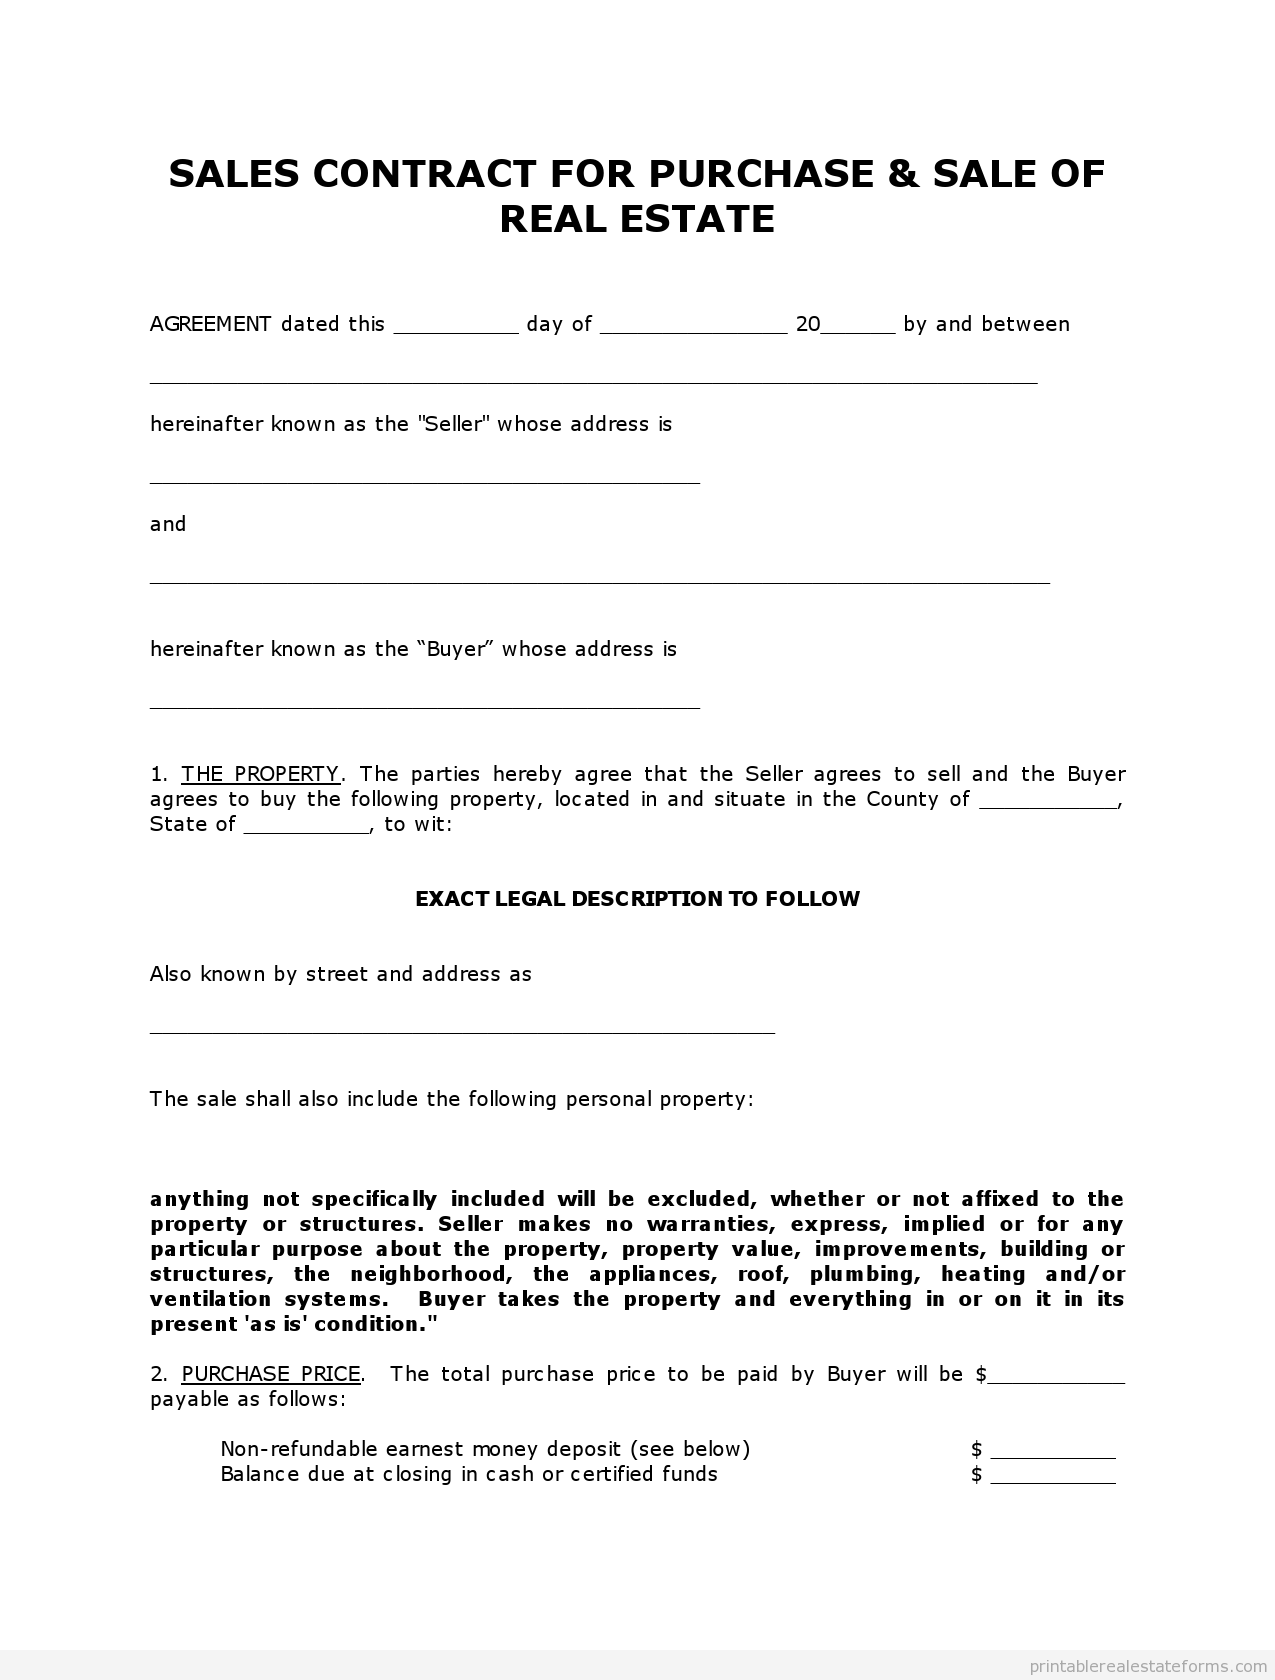 Free Printable Land Contract Forms Word File Real Estate Forms Real Estate Contract Real Estate Templates